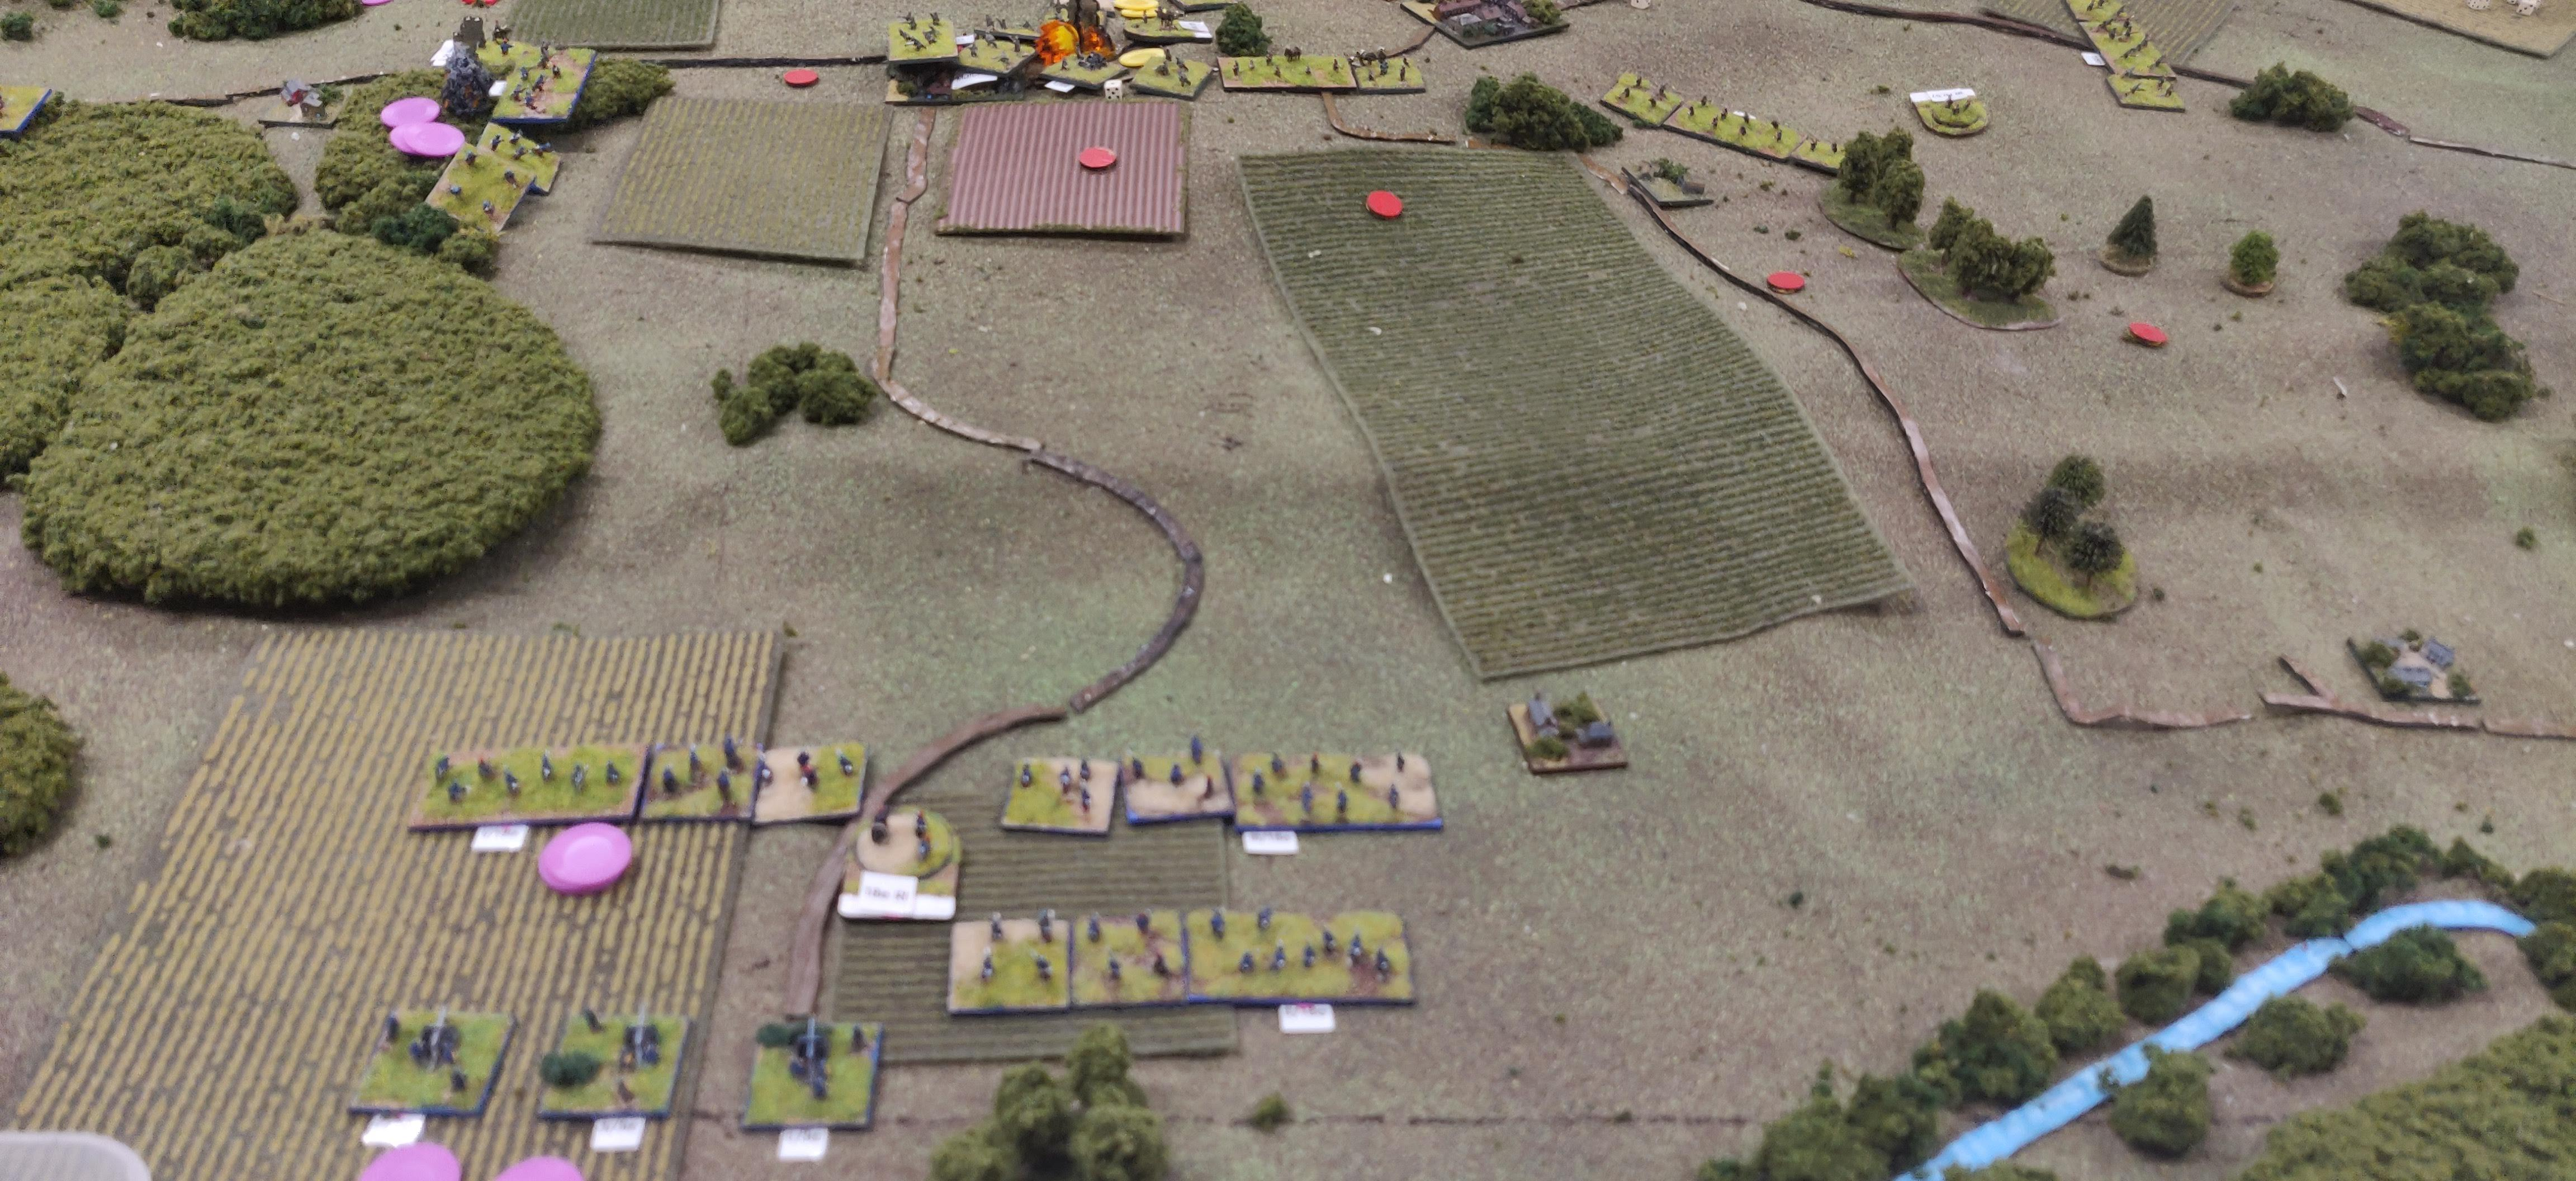 The 18e Regiment completes it's flank march, crossing the Petit Morin downstream of the main force and beginning their attack uphill.